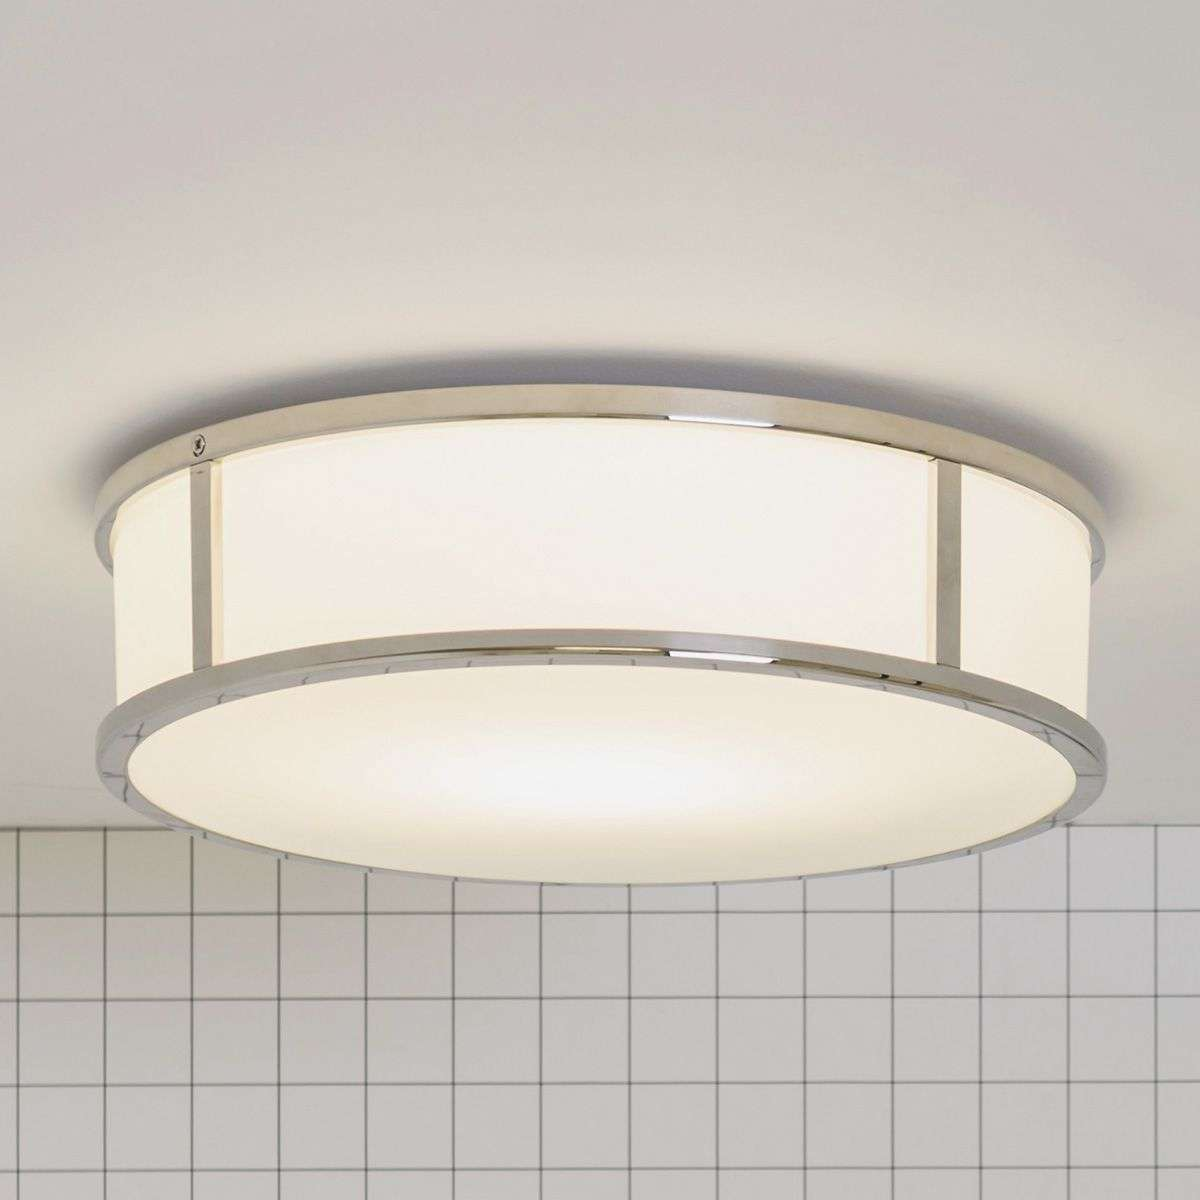 Ceiling Lights Company : Mashiko round bathroom ceiling light lights